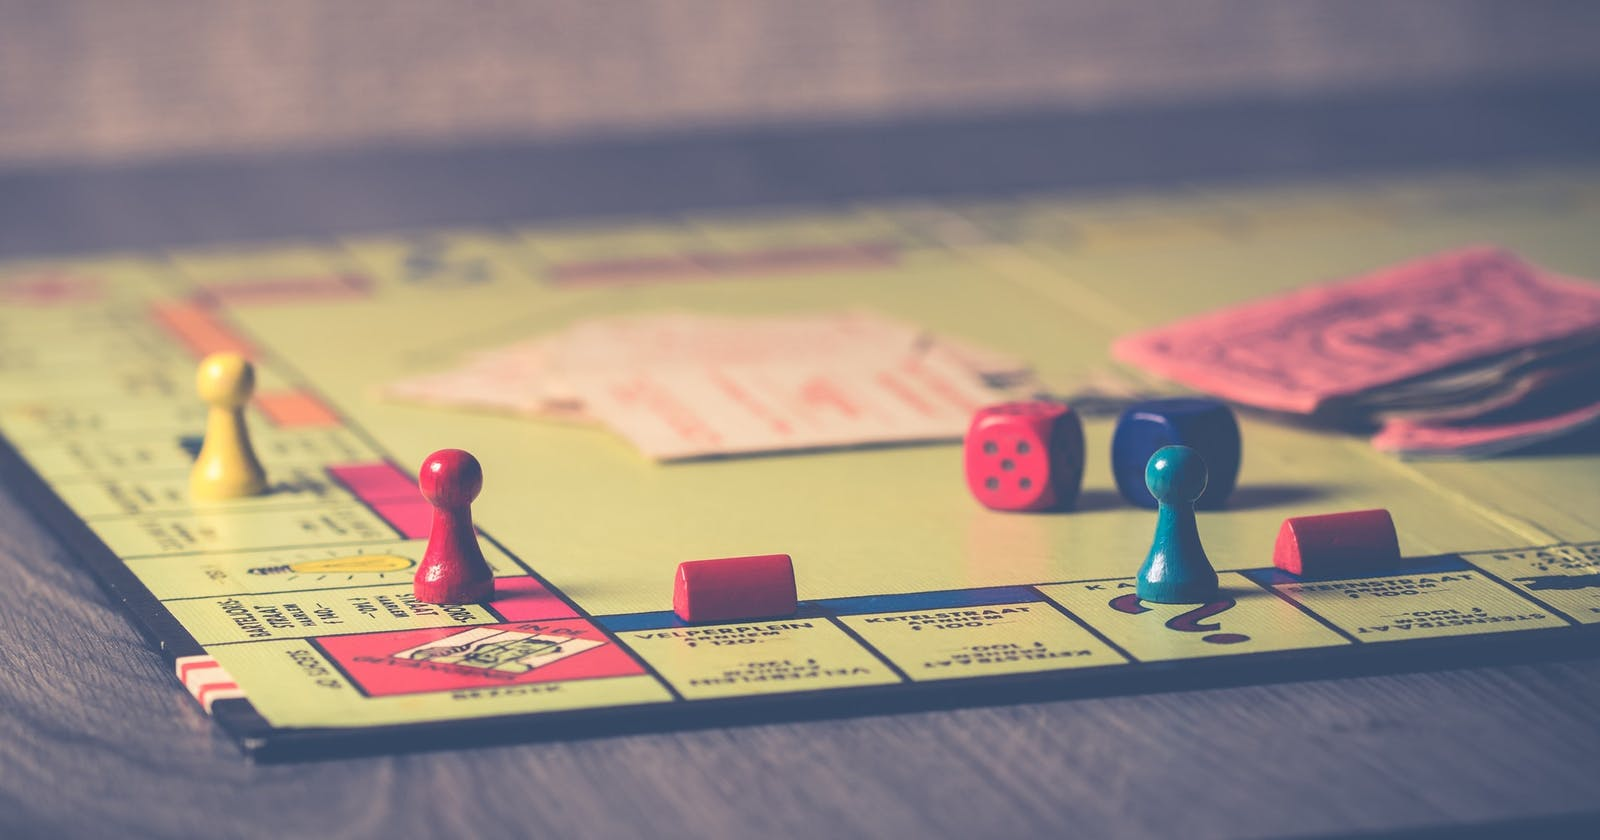 15 Games to Play for Your Next Virtual Game Night